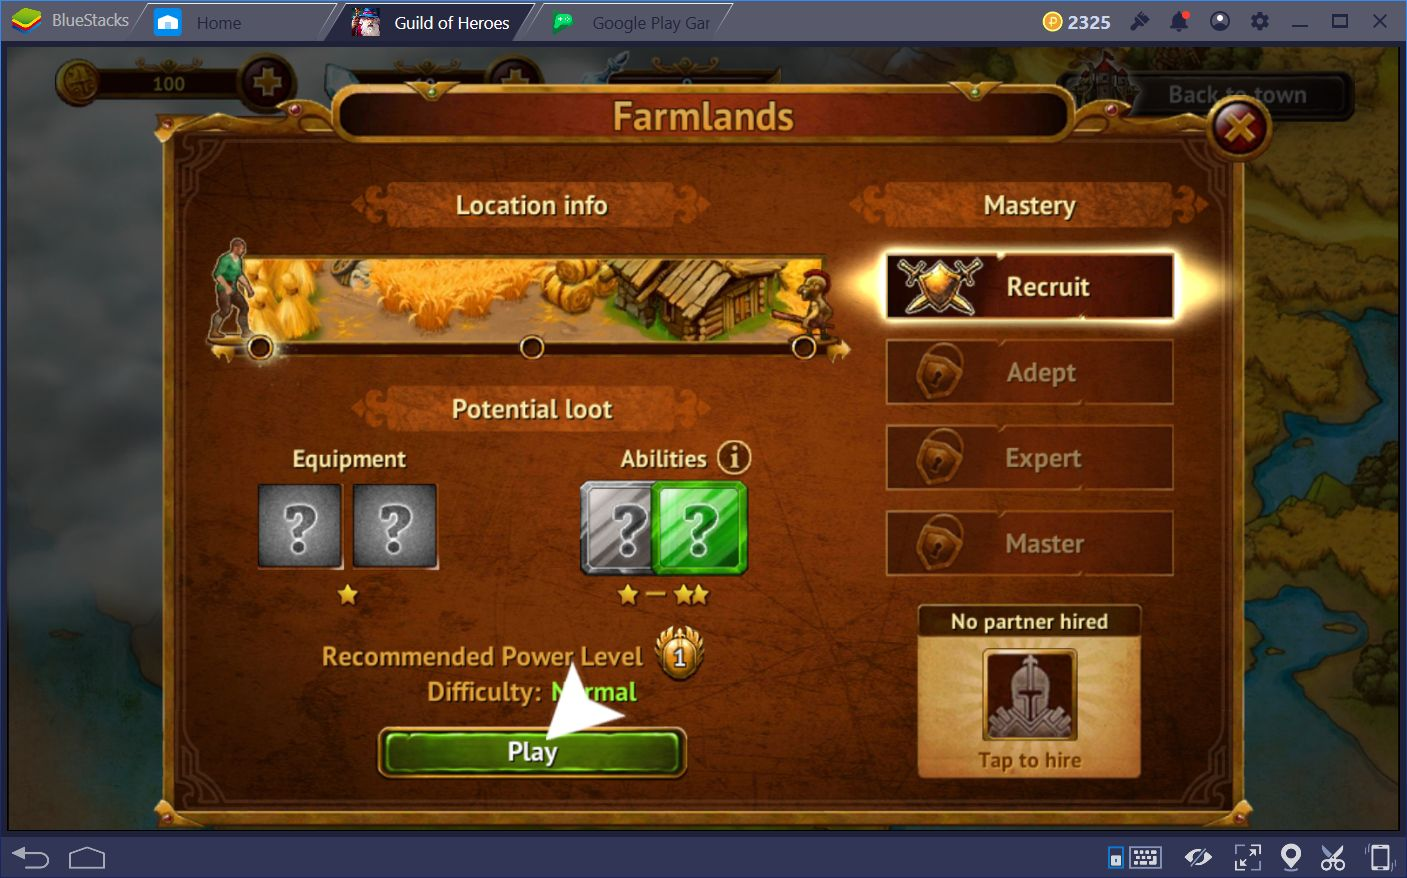 Getting Started in Guild of Heroes